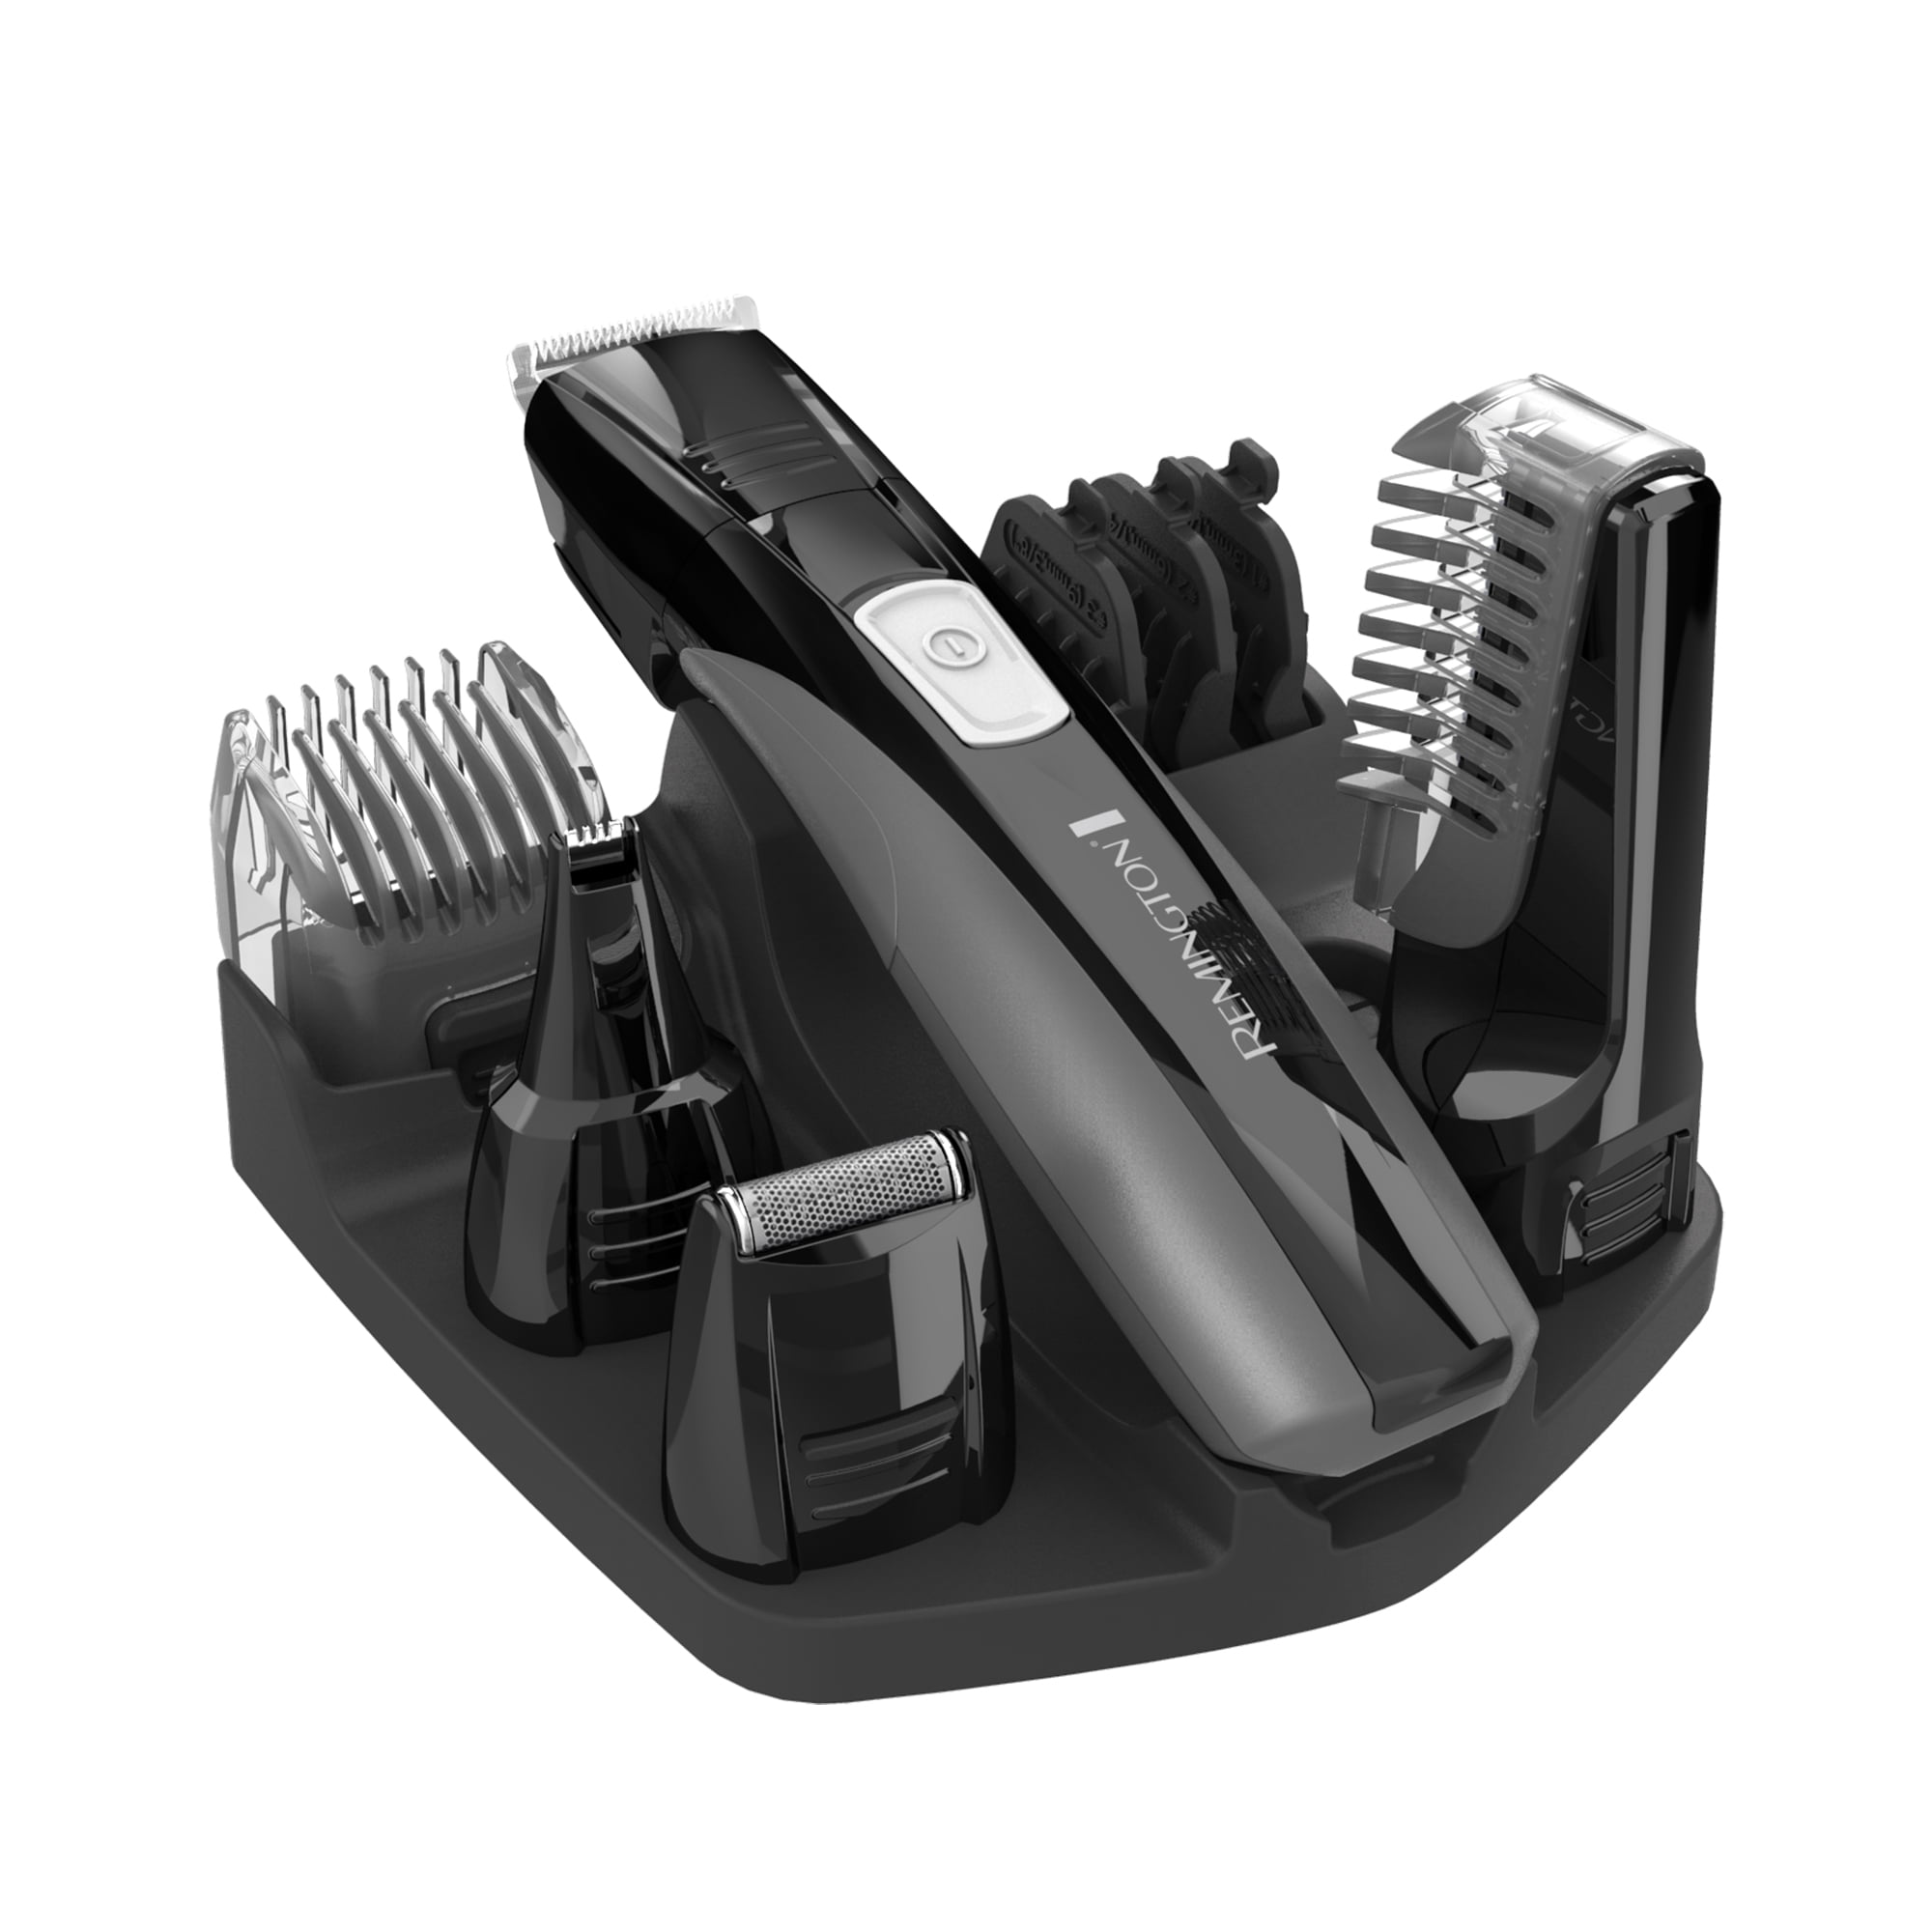 Remington Head To Toe Grooming Set Men S Personal Electric Razor Shaver Trimmer Black Pg525d